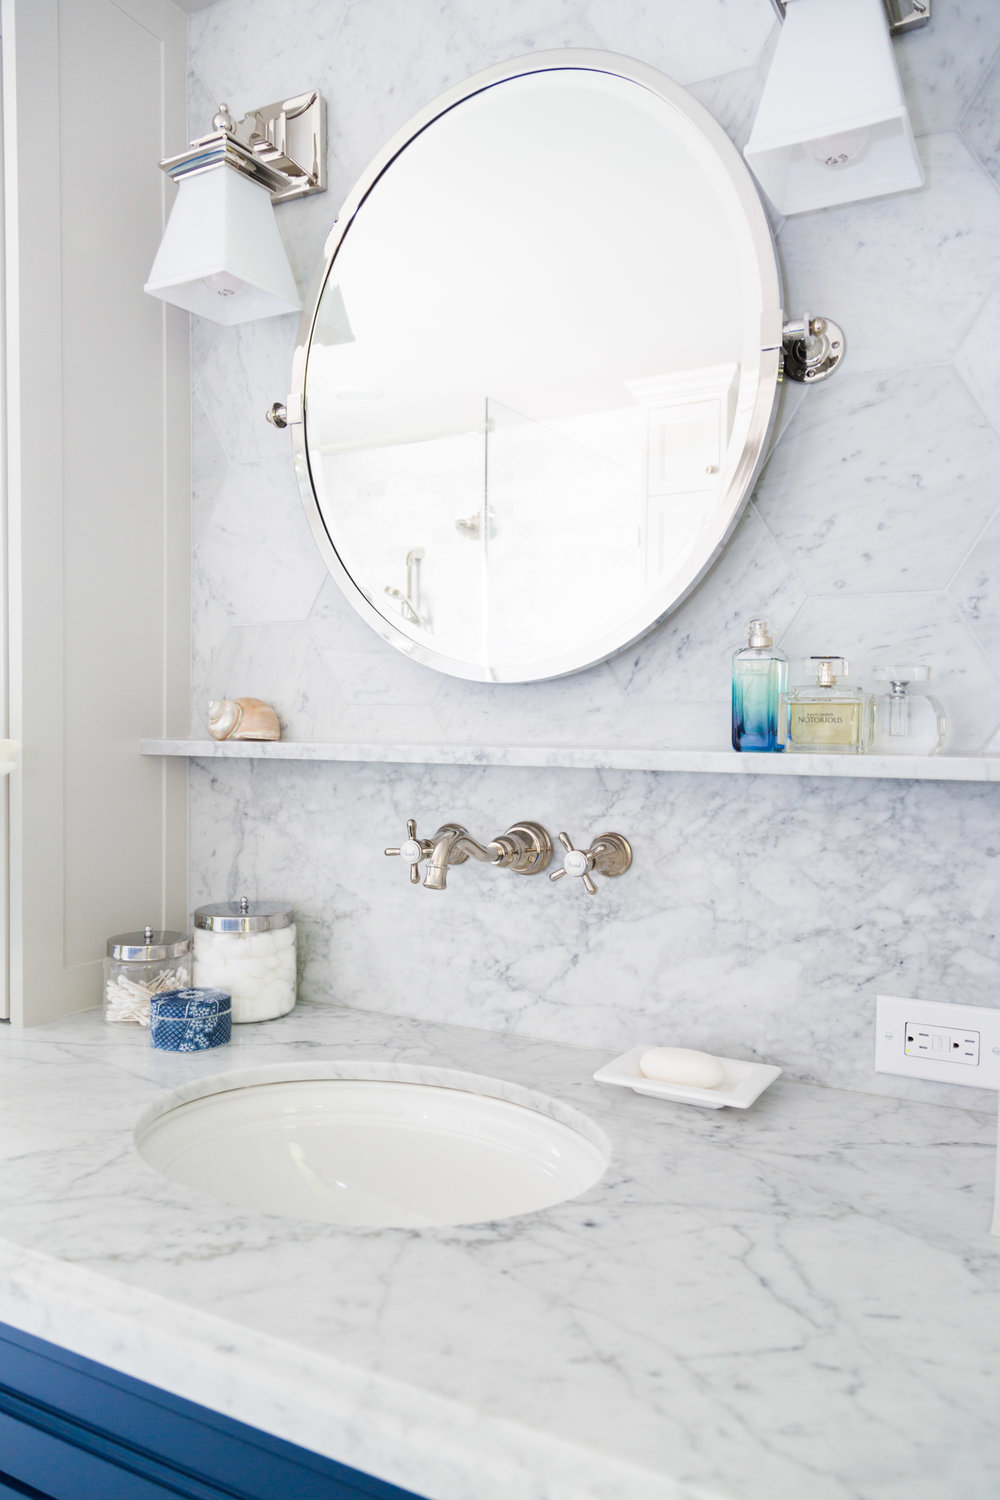 Cool Marble ledge and wall mount faucet with pivot mirror at master bathroom vanity Carla Aston